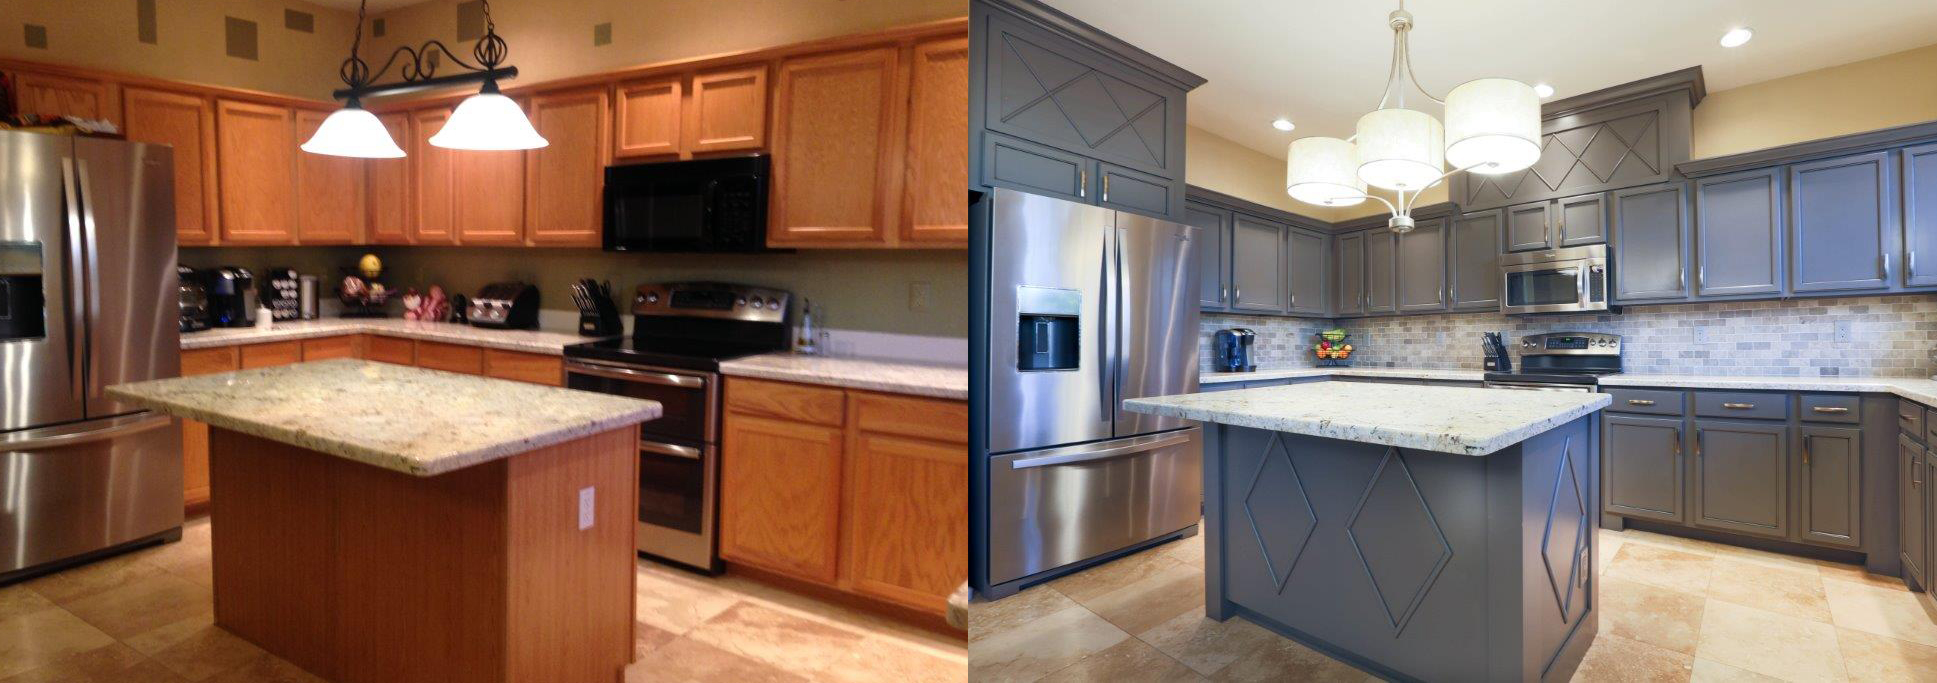 Exceptionnel Kitchen Cabinets Refinished 6